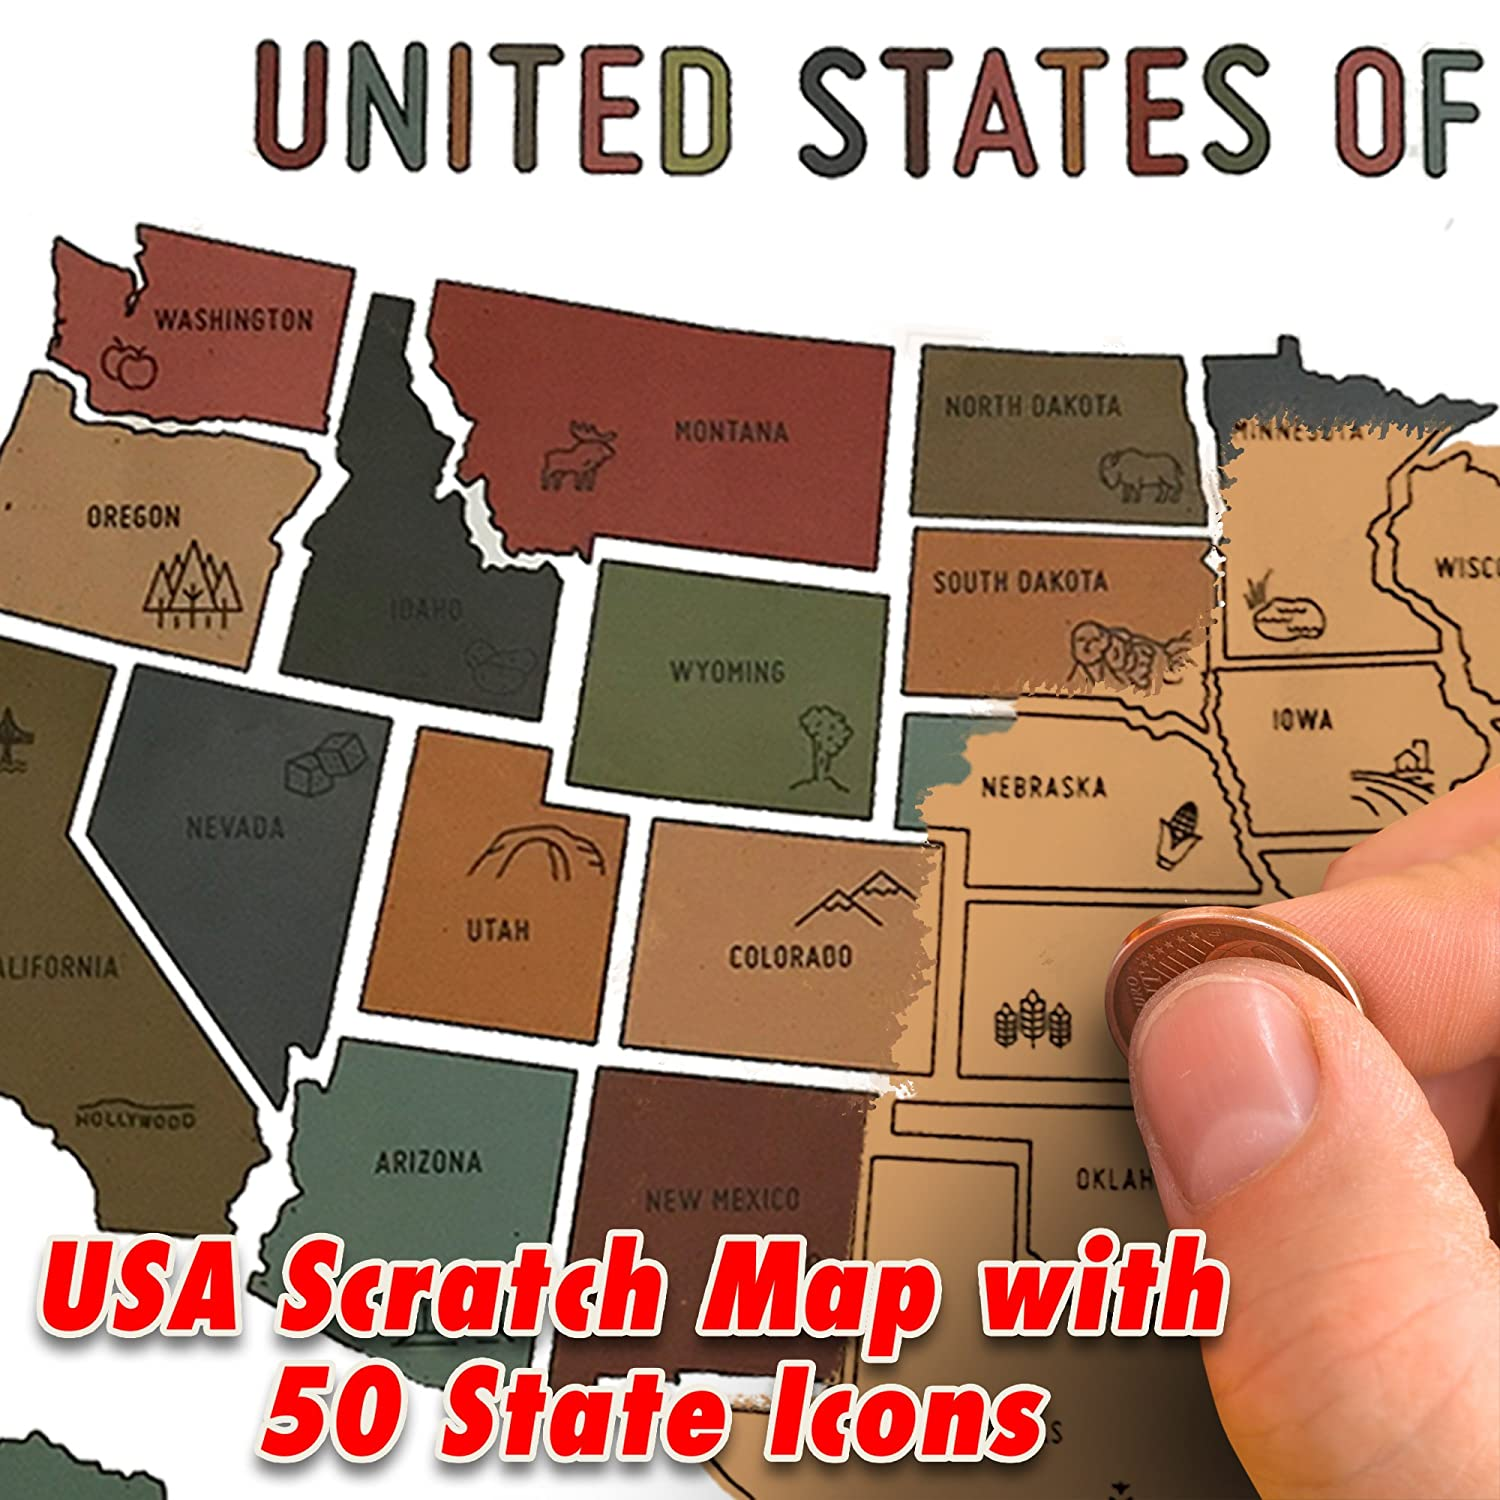 Scratch Off Map of The United States - USA Oversized Watercolor Pastel Travel Map - US 50 States Travel Tracker Gift - Where I Have Been Maps - Travel Fund - Vacations, Camping, RV and Van Trips WDS USSCRATCHMAPUSA1